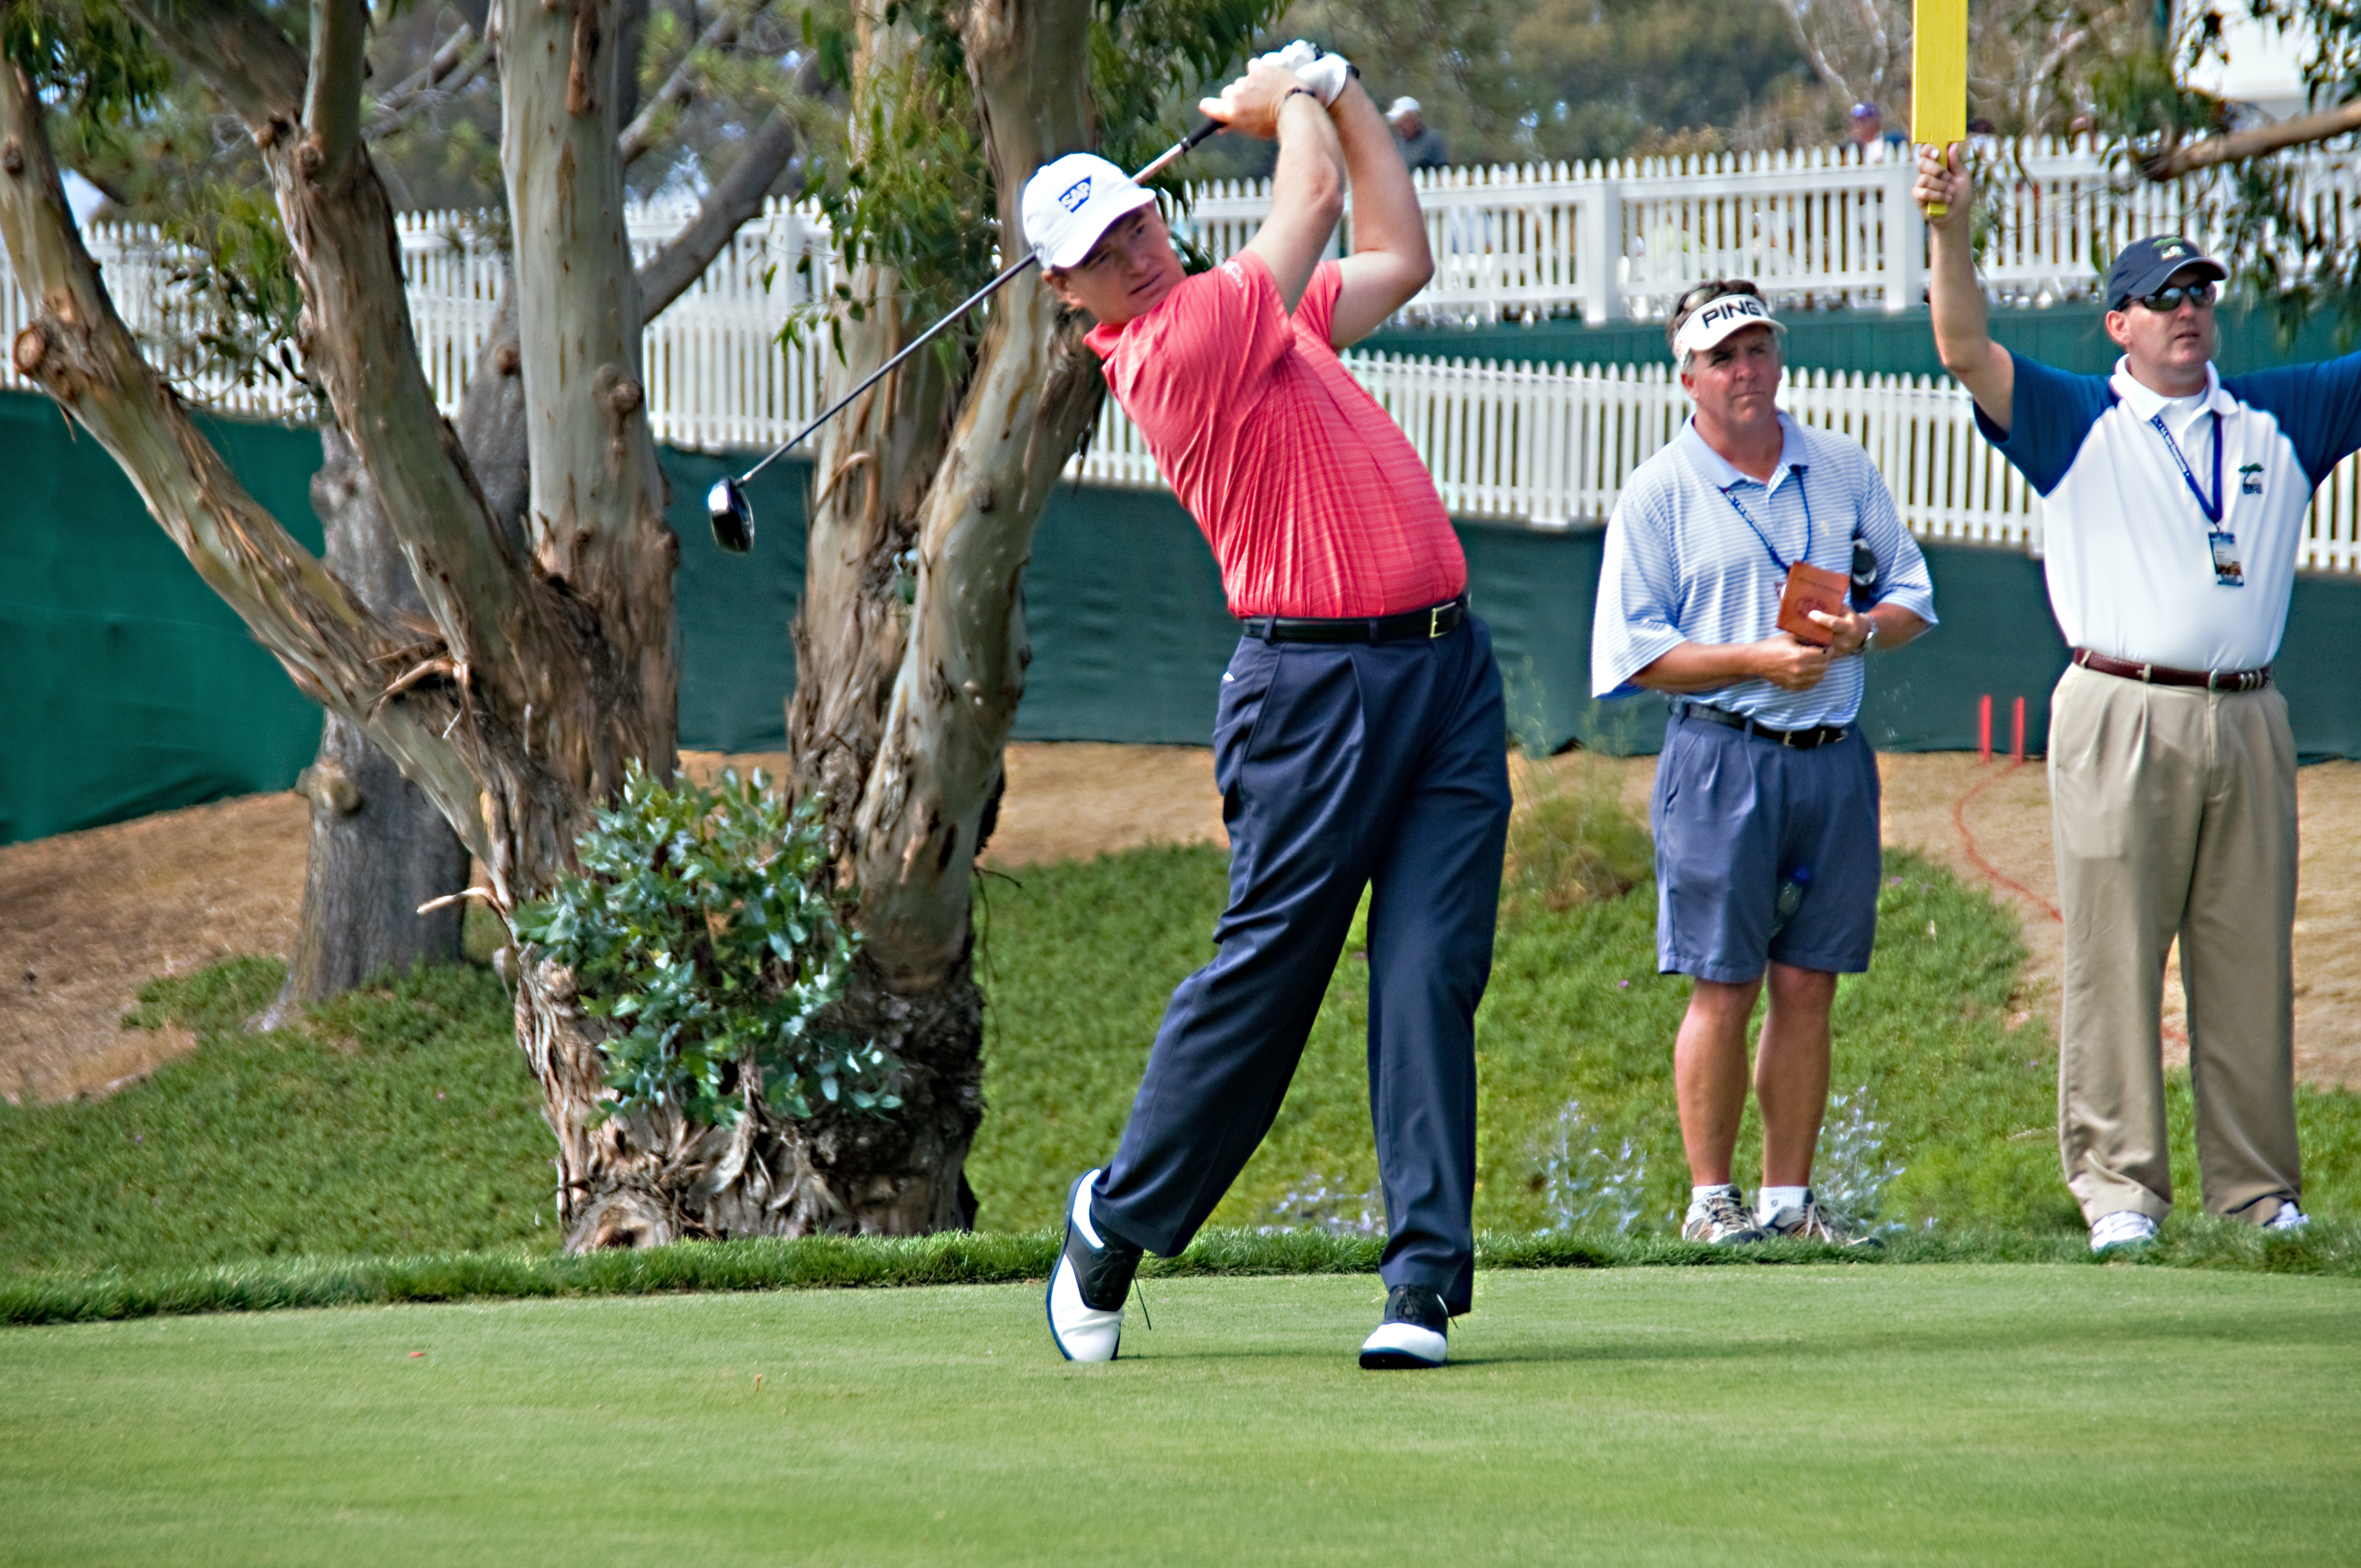 Corey Harrison Wife Charlene Els at torrey pines for the